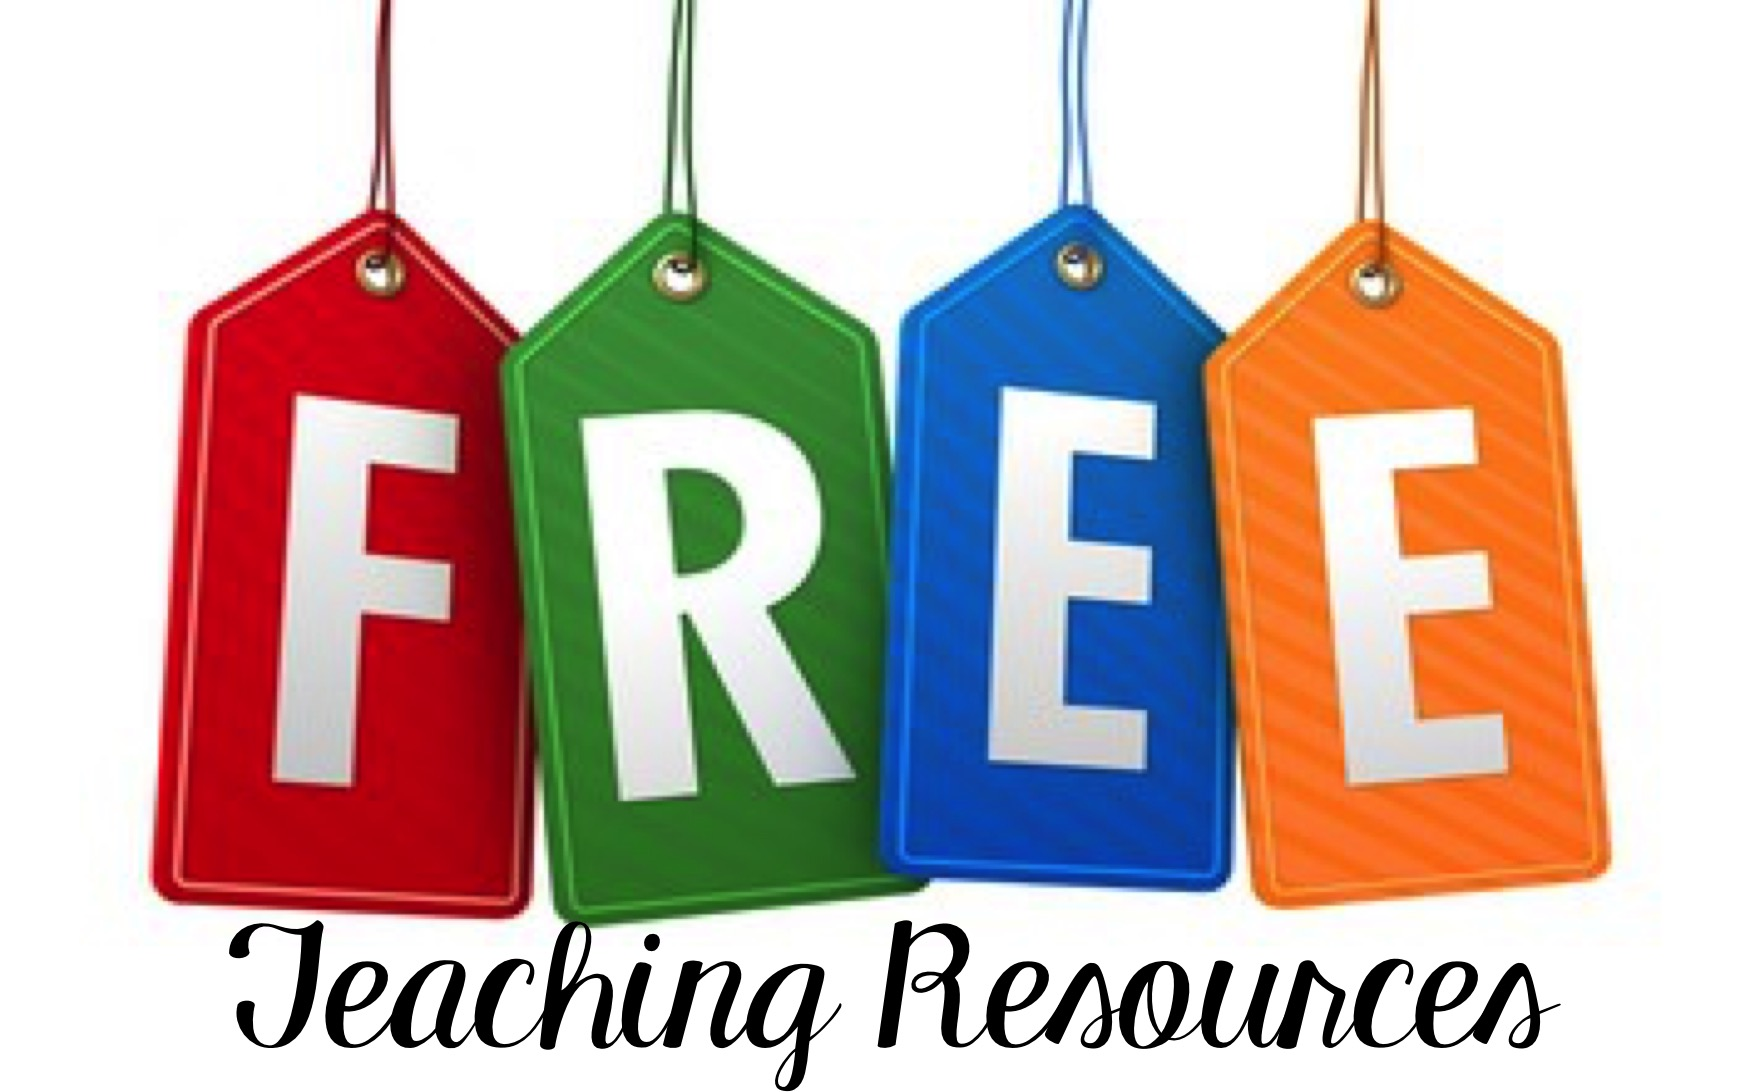 Looking for great FREE teaching resources? Then you're going to LOVE this blog post! You'll have instant access to more than 30 freebies all in one convenient spot. Great free downloads here for preschool, Kindergarten, 1st, 2nd, 3rd, 4th, 5th, 6th, 7th, and 8th grade classroom or homeschool teachers. Click through to see which freebie you want!